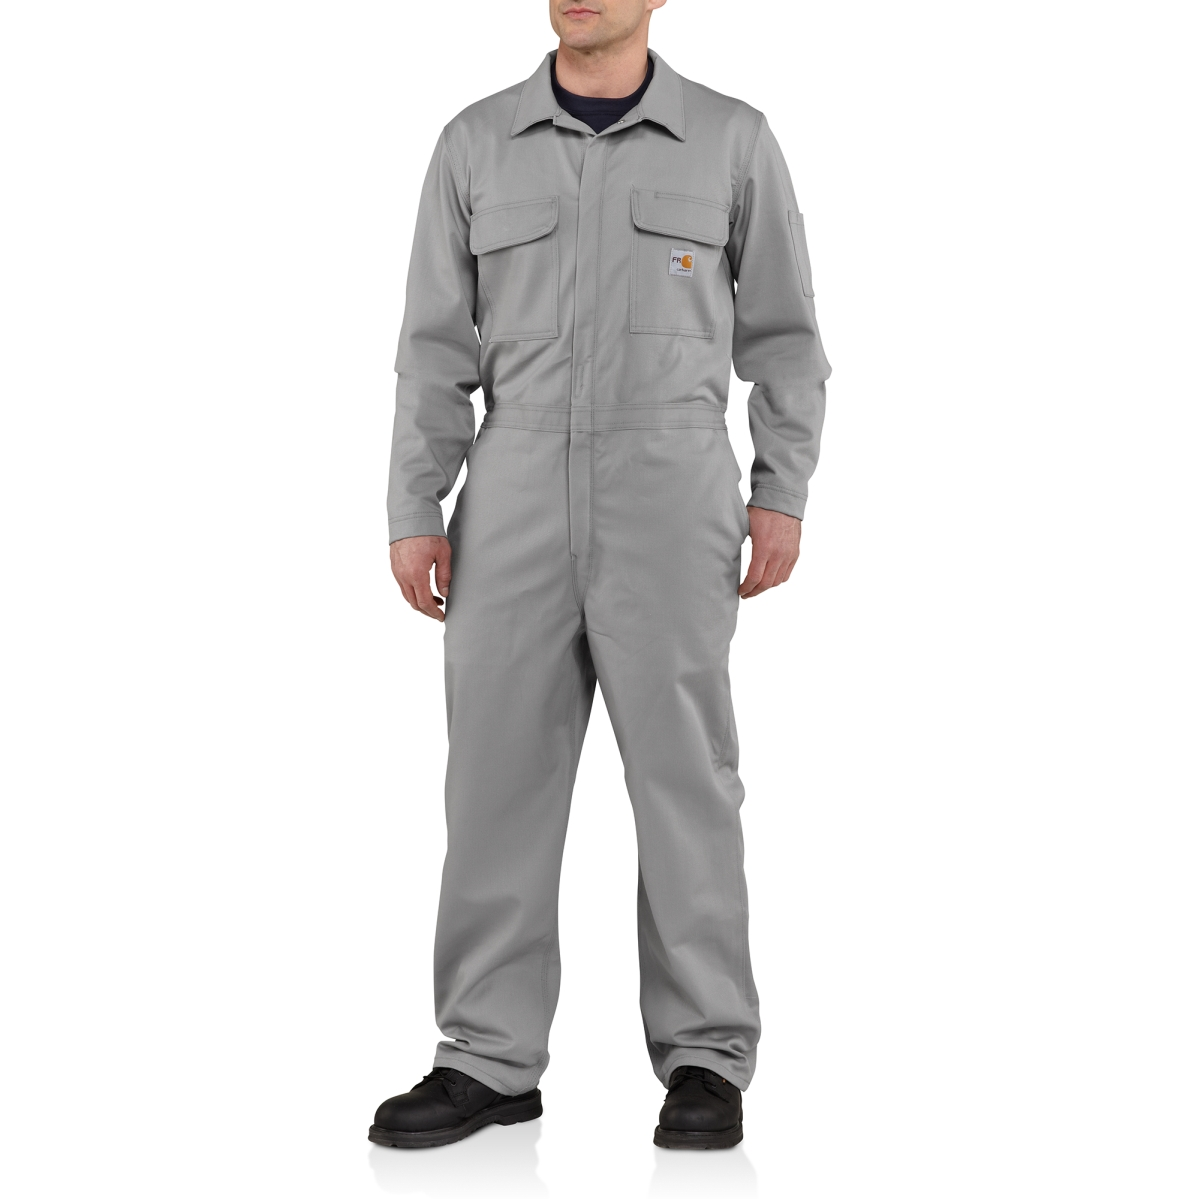 NFPA 2112 Flame-Resistant